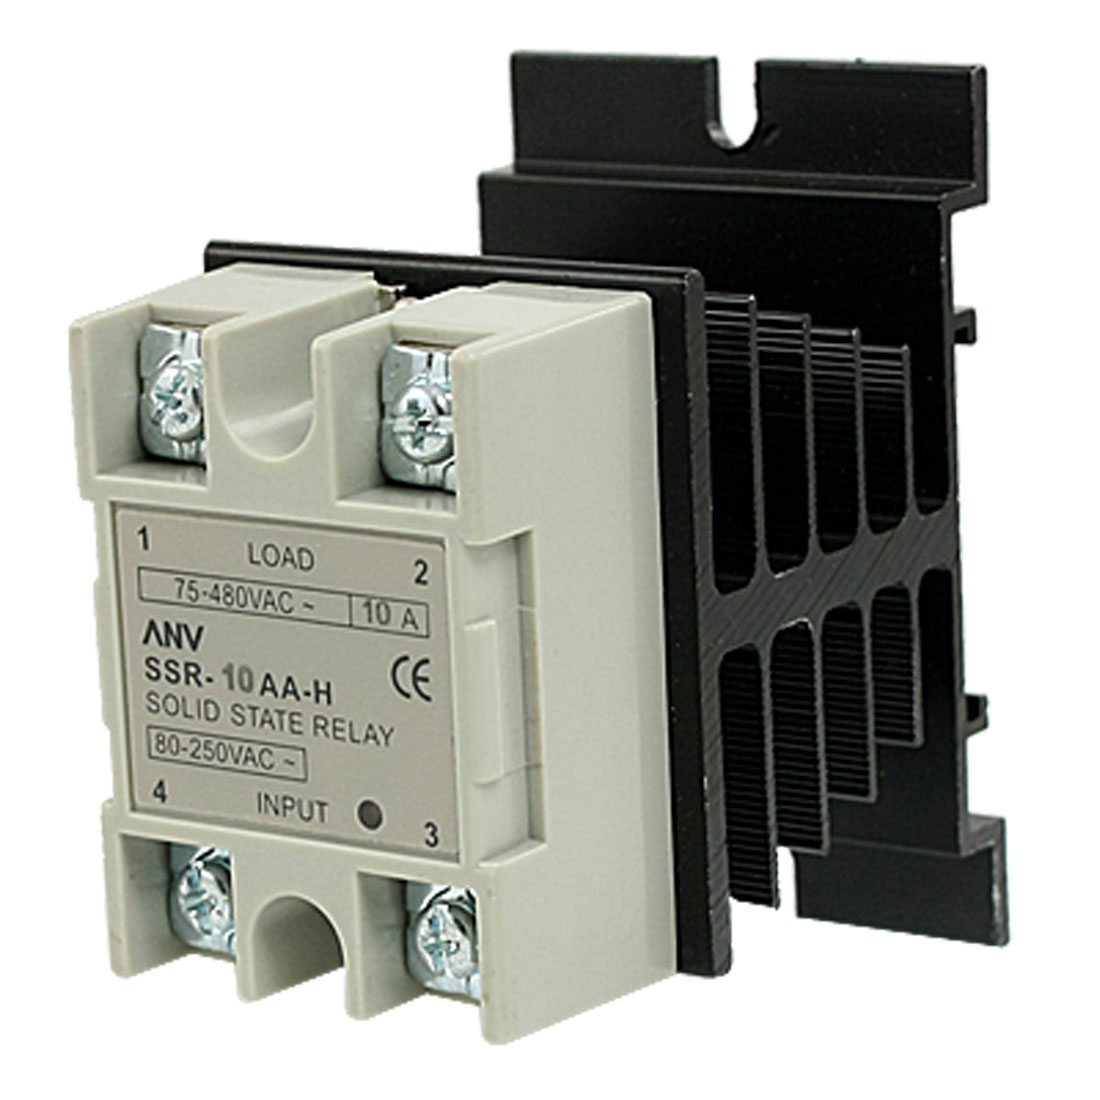 AC to AC Single Phase SSR Solid State Relay 10A 80-250VAC / 75-480VAC w Heat Sink